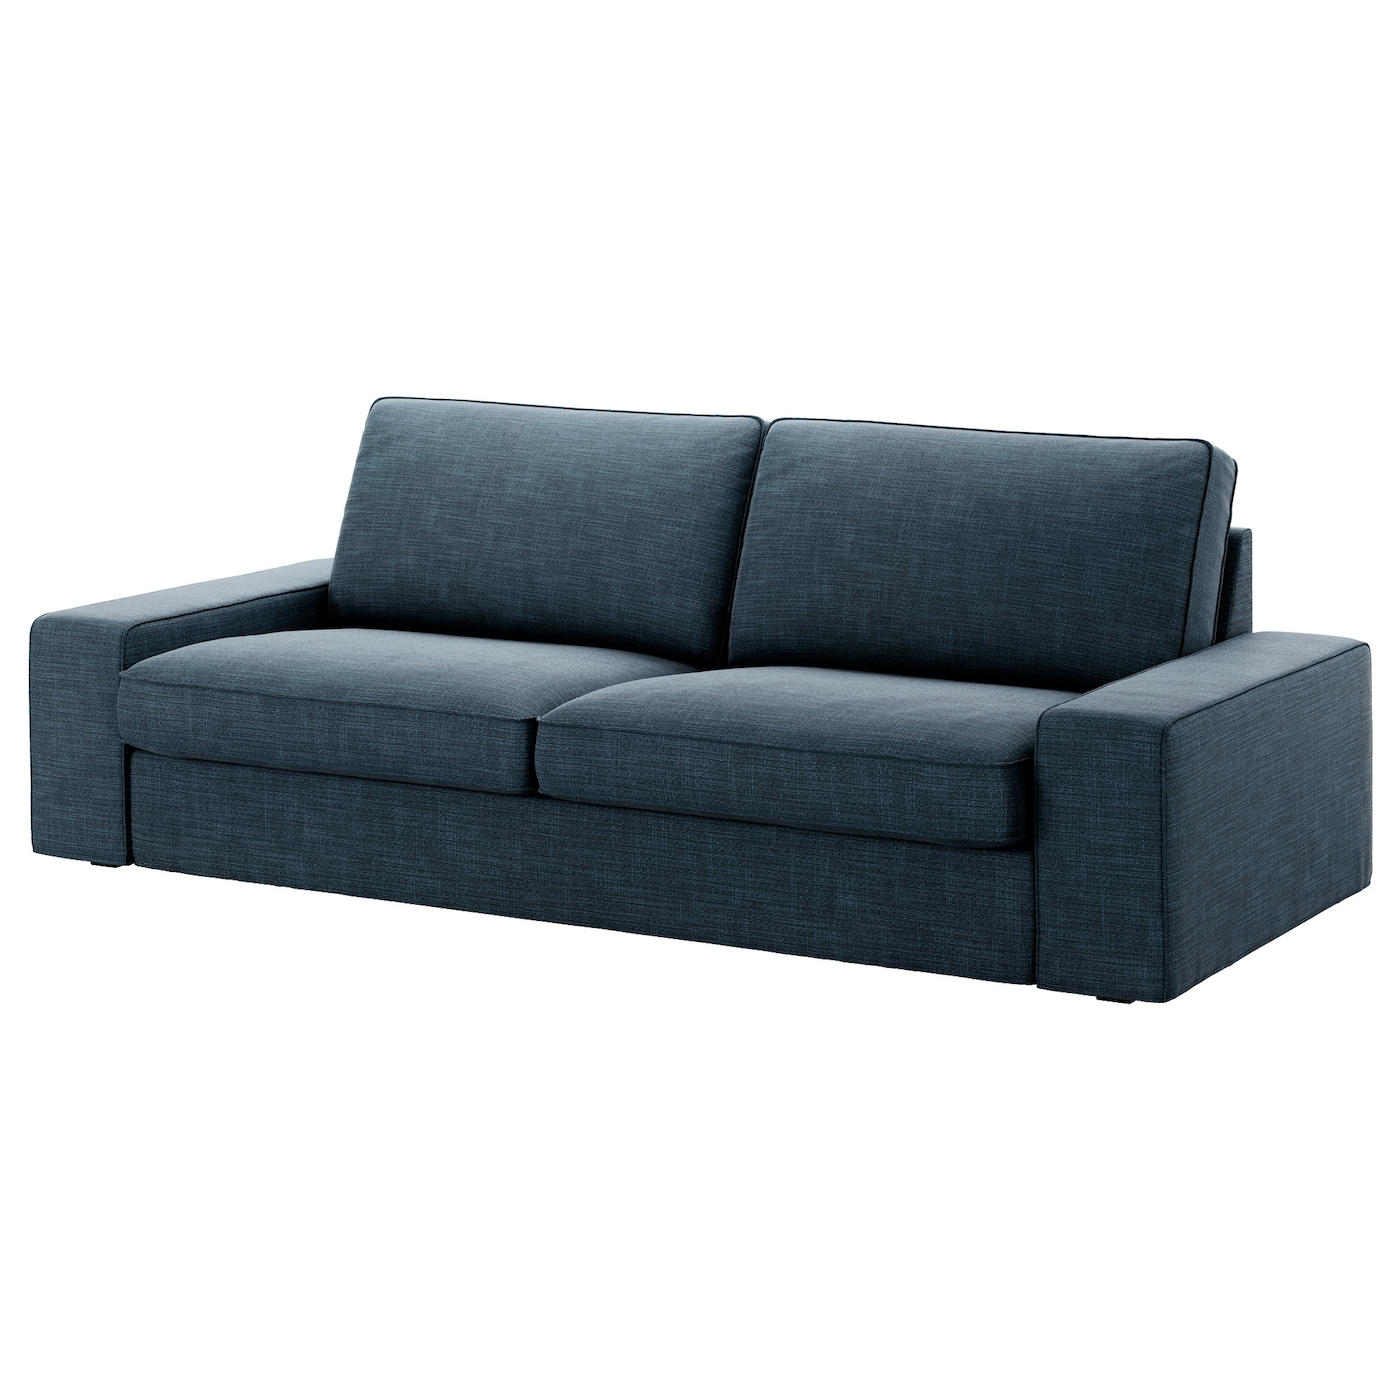 Ikea KIVIK Sofa, Hillared dark blue